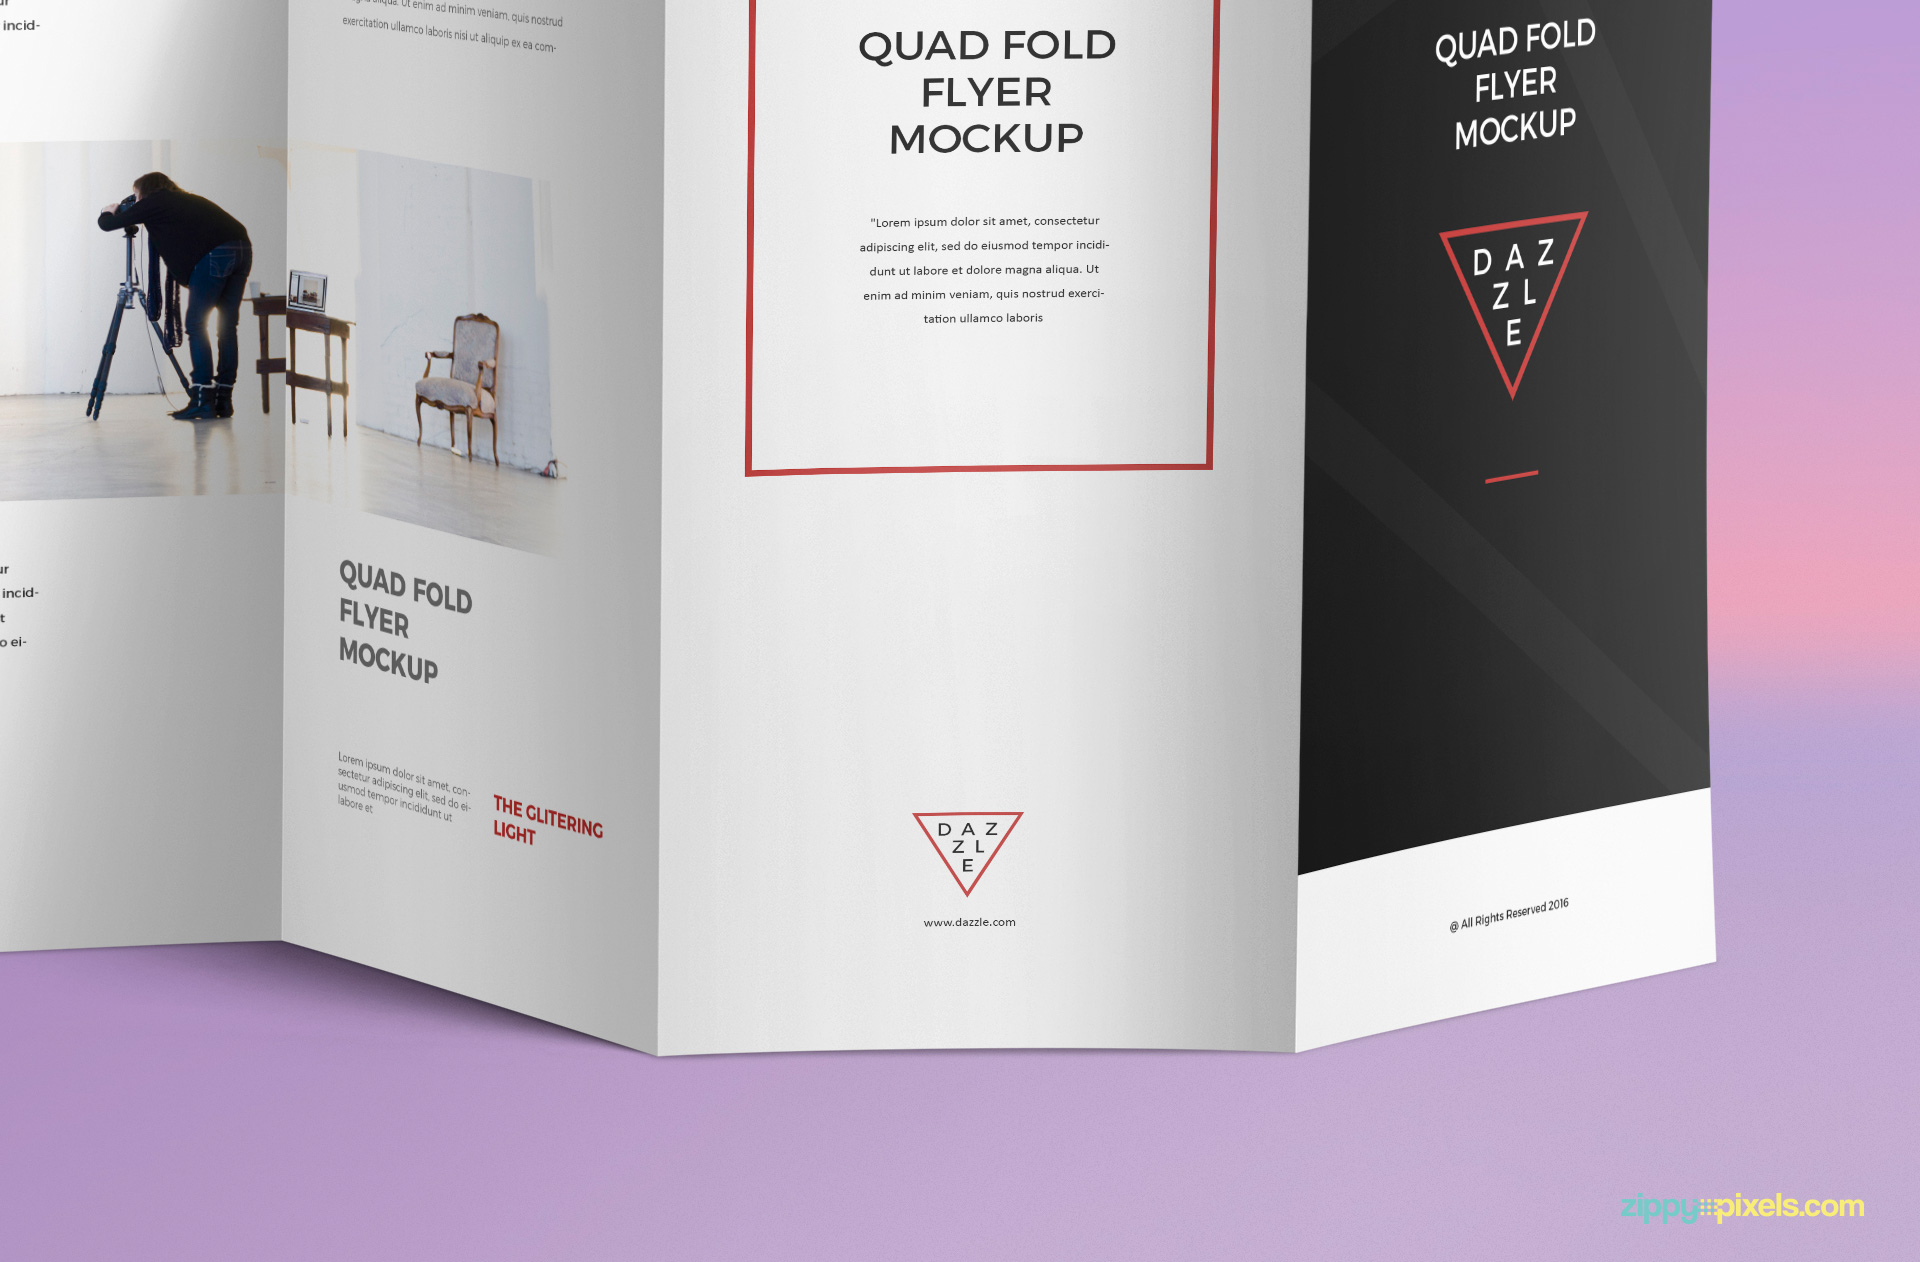 You change the designs of this brochure mockup in Adobe Photoshop.